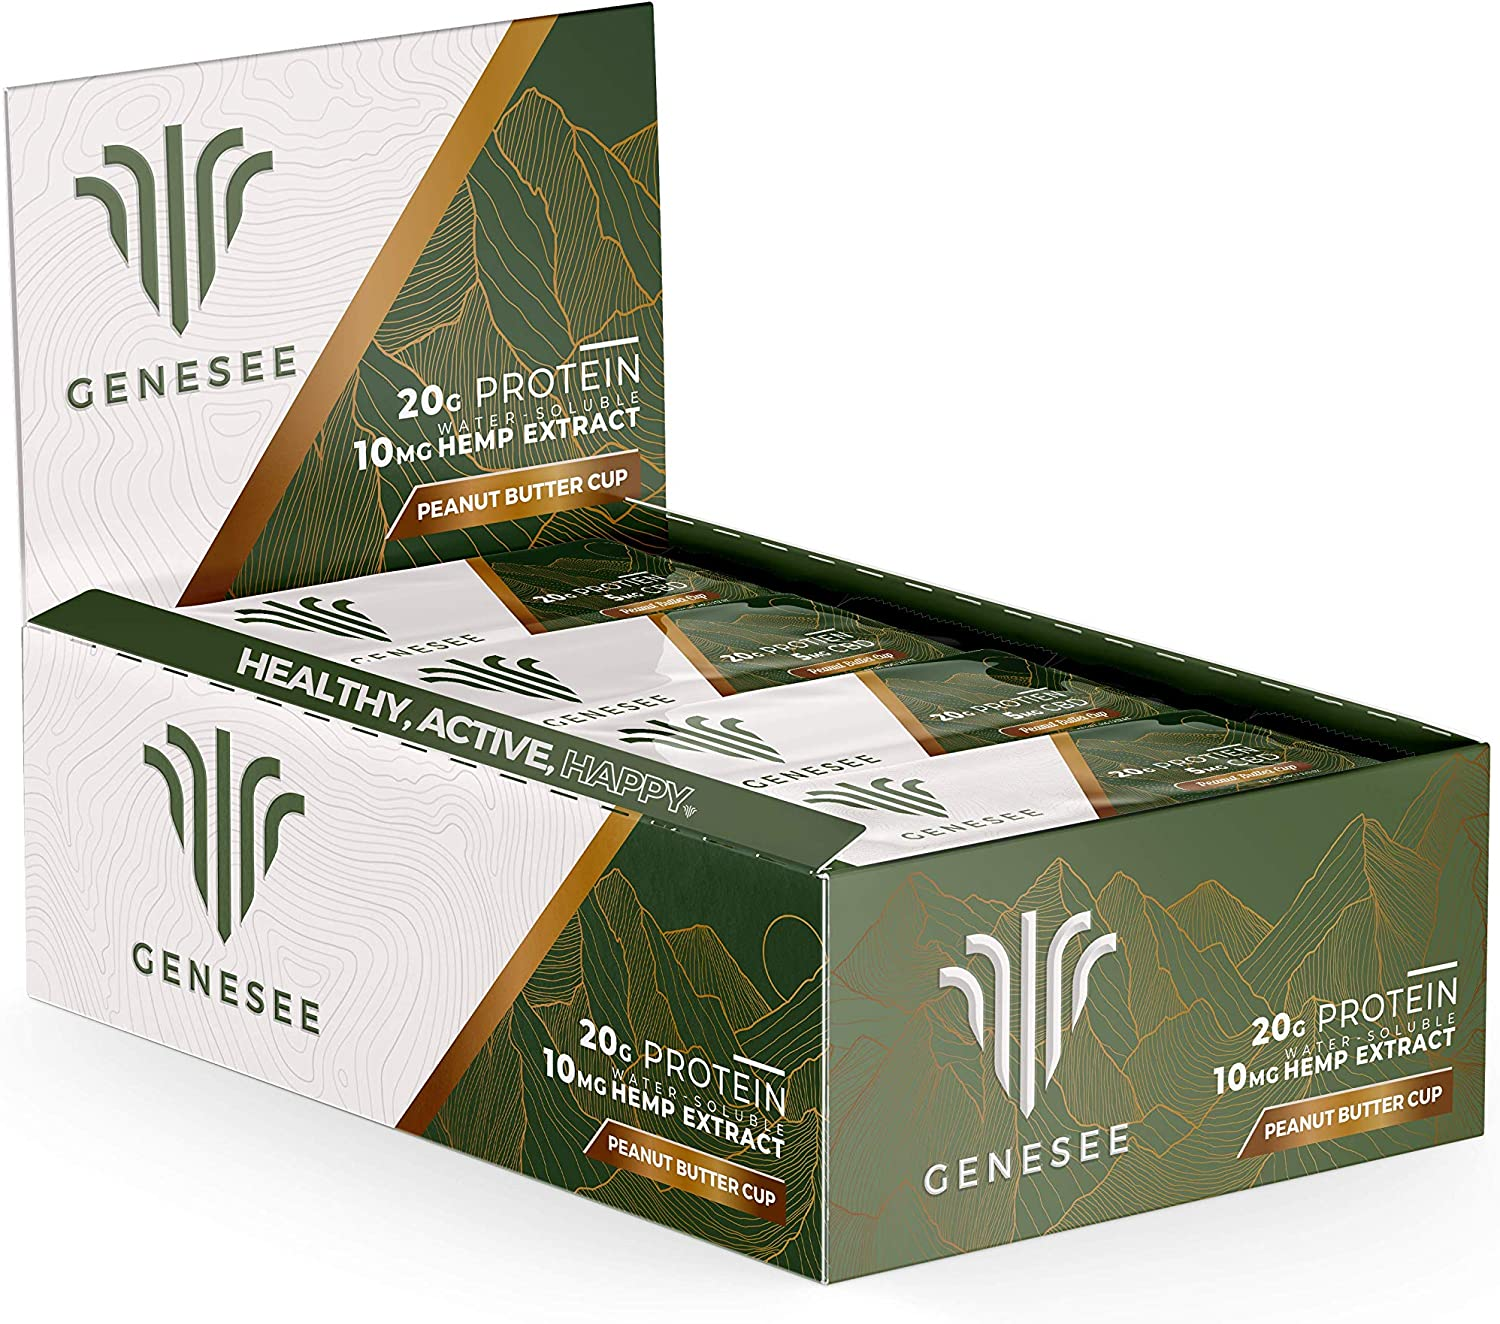 At the price Genesee Peanut Butter Cup Protein Hemp Extrac Award Bar High